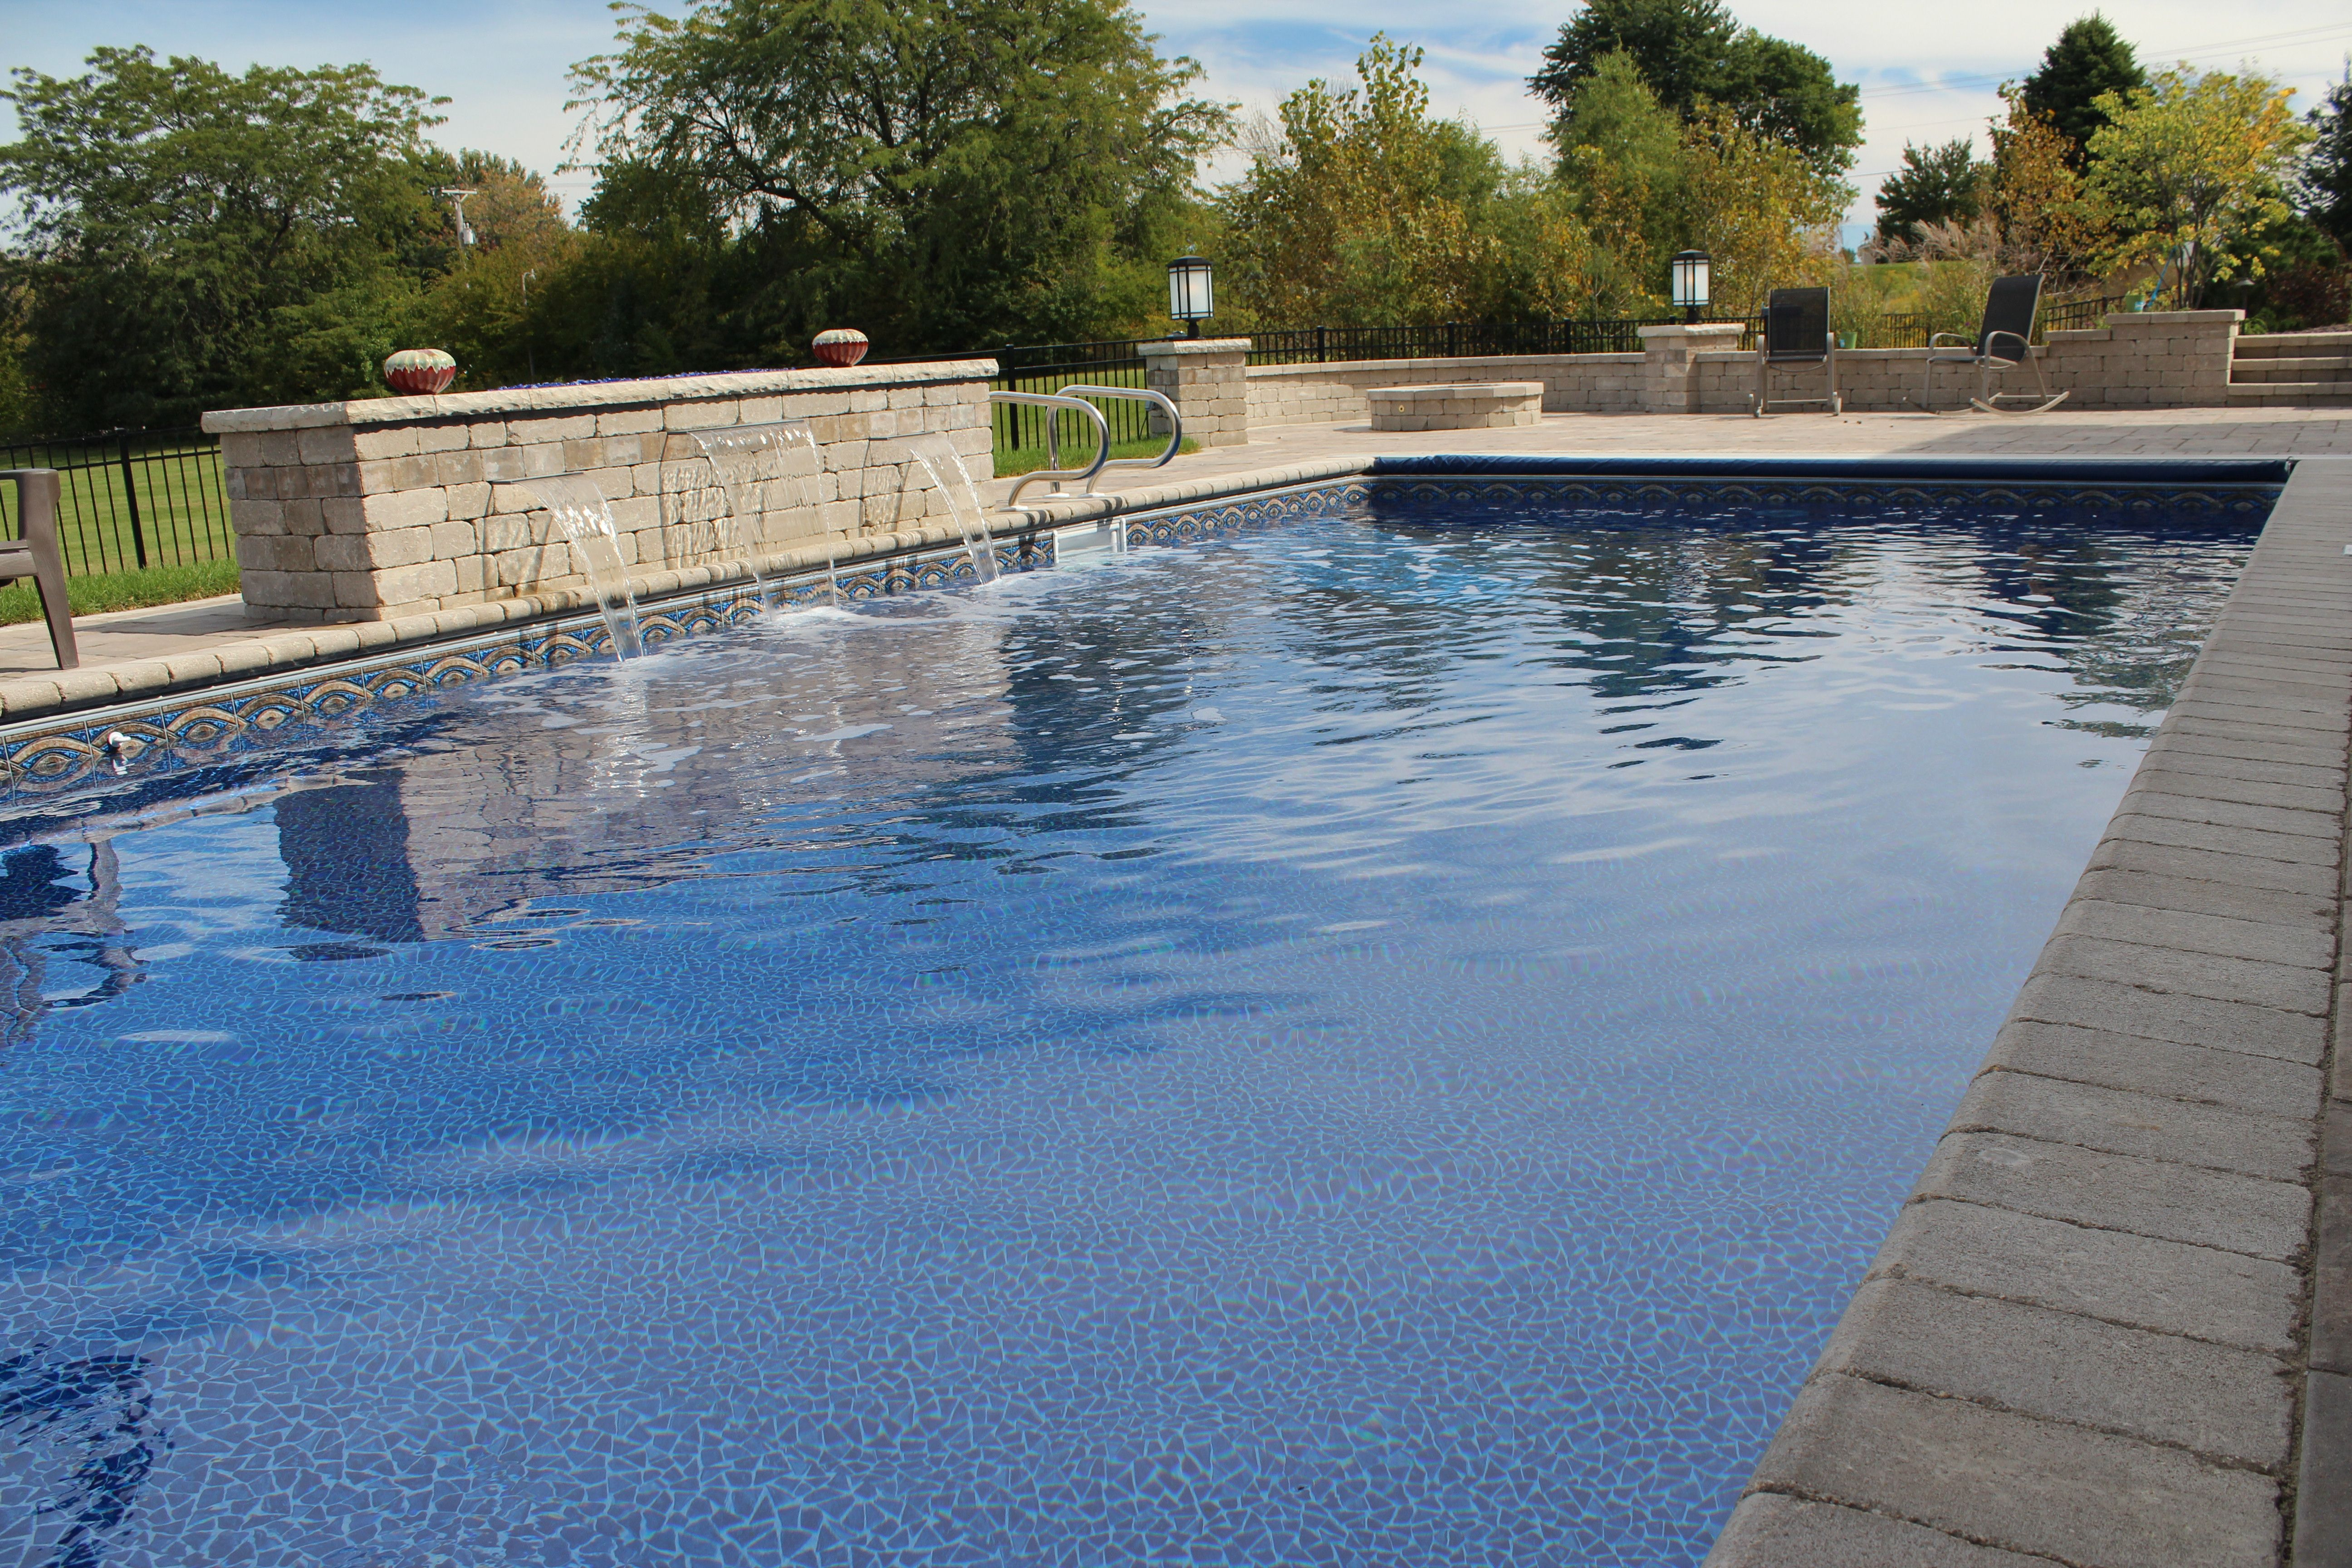 This Is A 15 X 32 Rectangle With Polymer Walls And A Vinyl Liner The Pool Includes A Coverstar Automatic Pool Cover And Full W Aqua Pools Saltwater Pool Pool